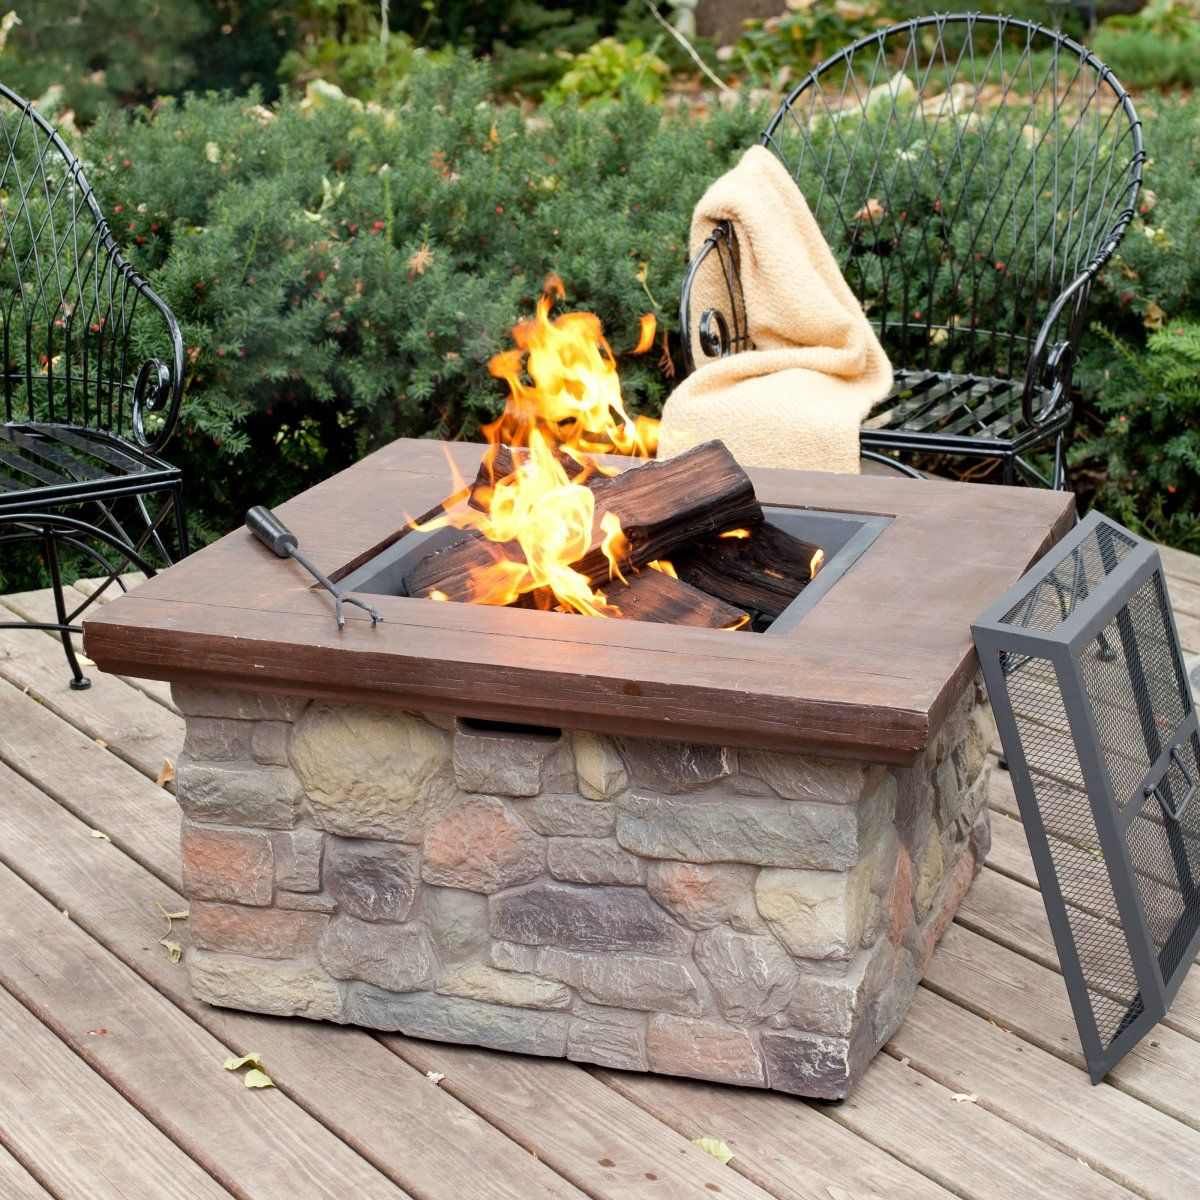 Bond galiano wood burning fire pit table outdoor ideas pinterest